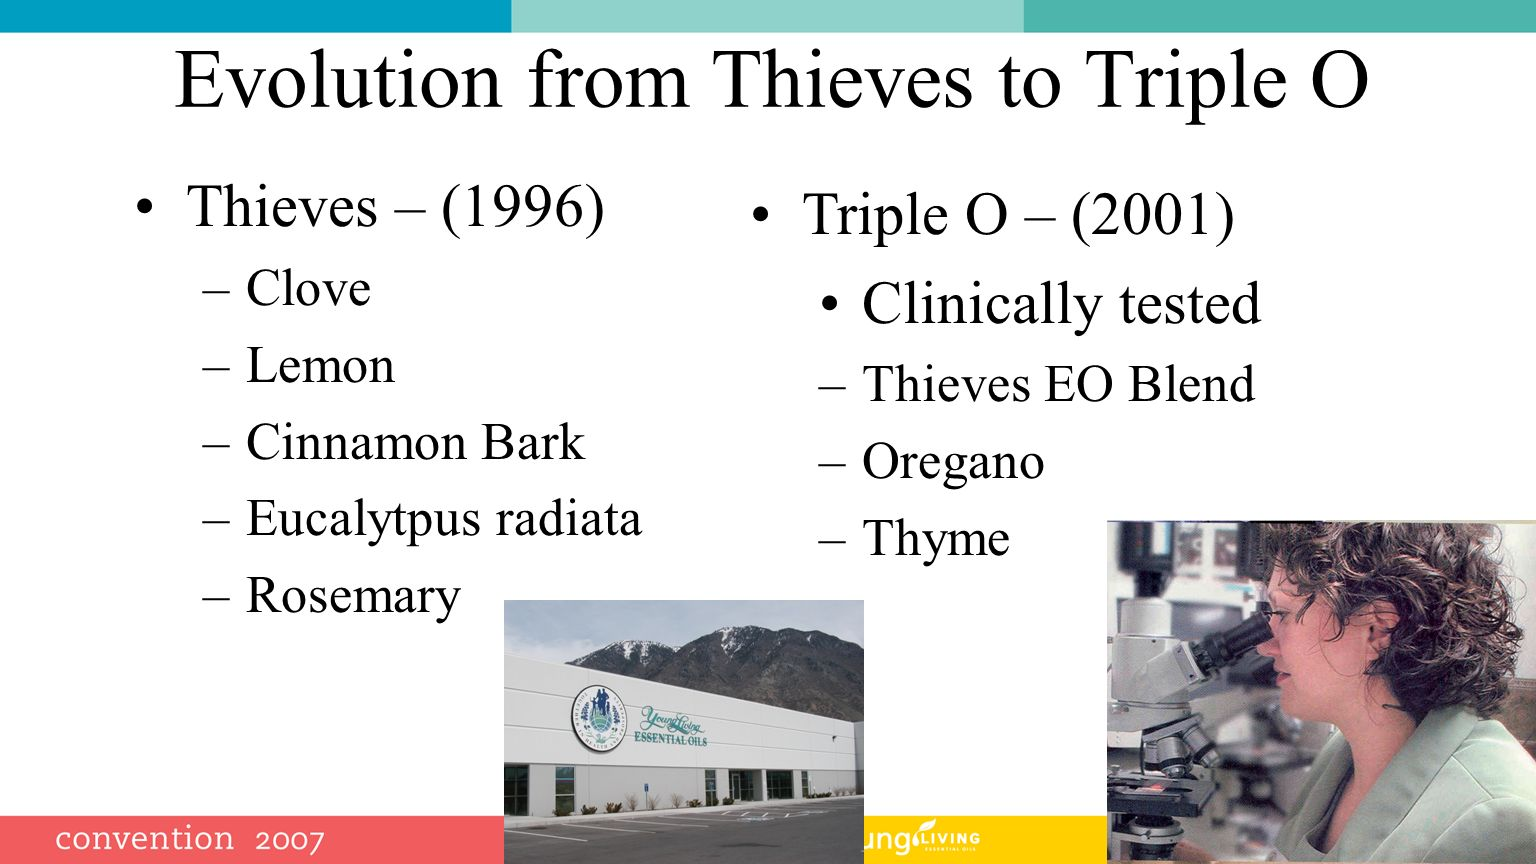 Evolution from Thieves to Triple O